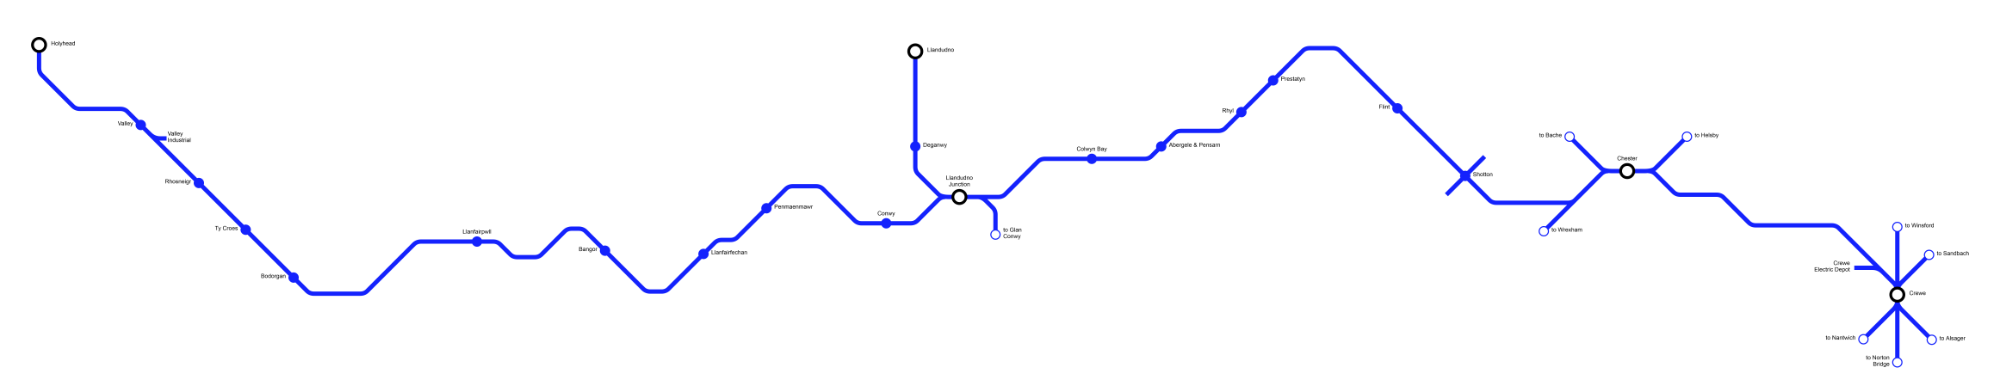 Image showing a map of the North Wales Coastal Route Extension route